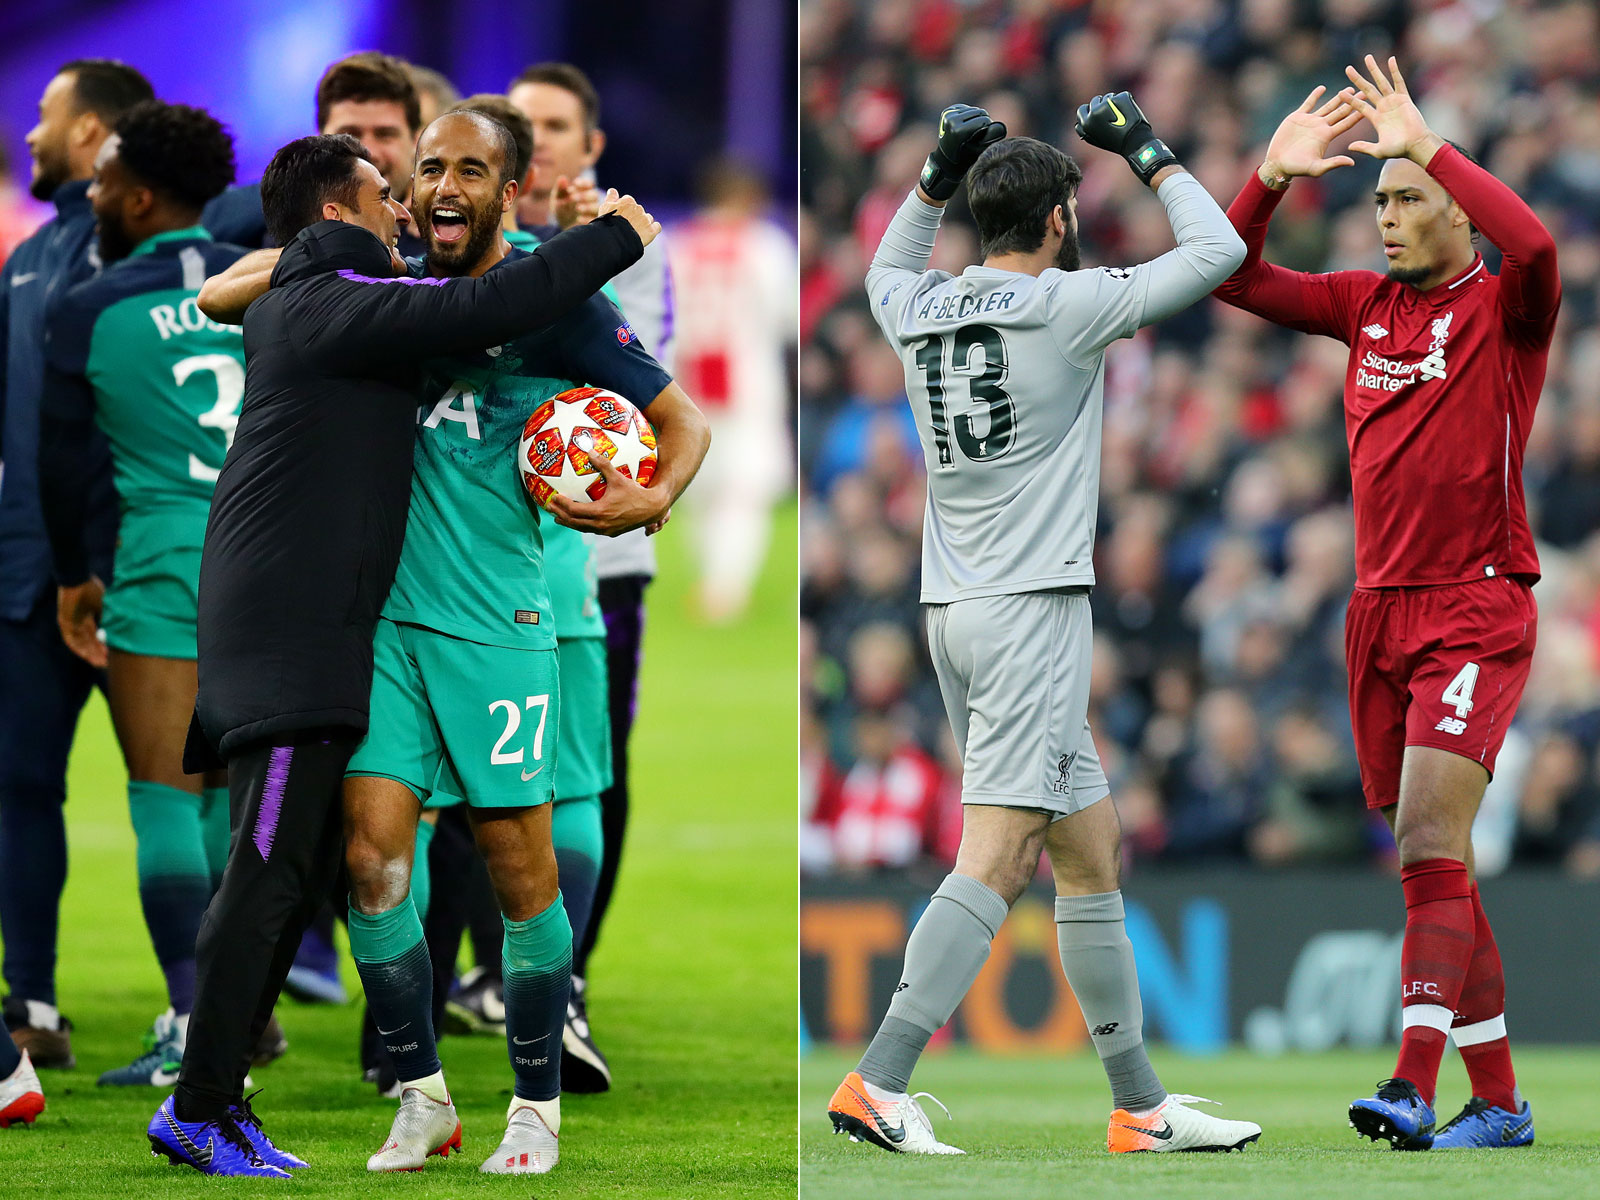 Tottenham and Liverpool have reached the Champions League final